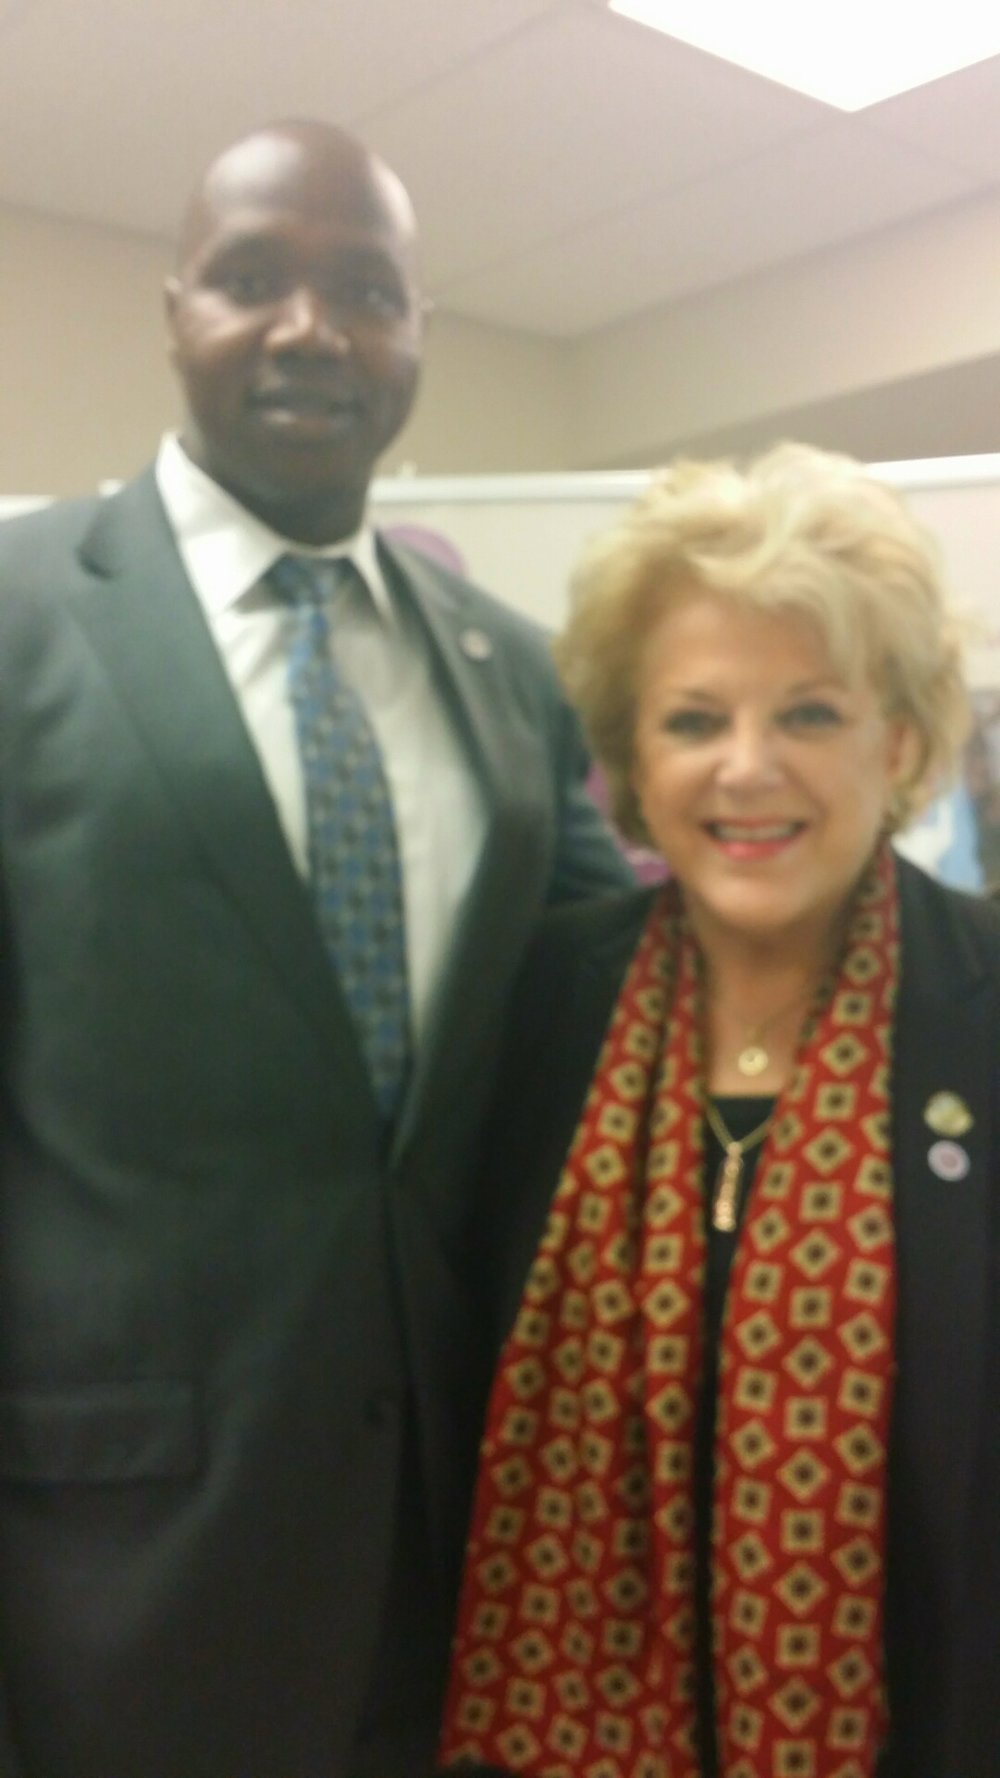 With the Mayor of Las Vegas Carolyn Goodman at the Catholic Charities Strategy Insights Workshop 4.8.16